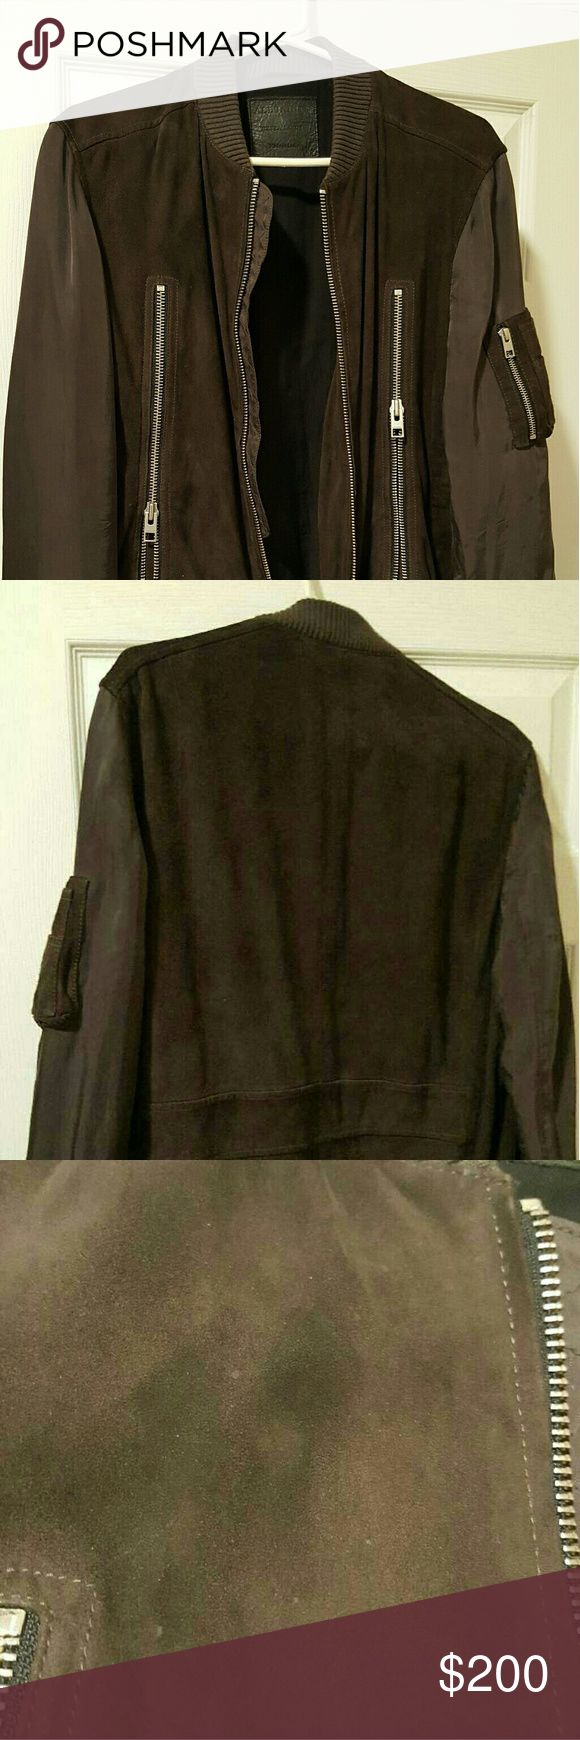 All Saints Men's XL Jair Leather Suede Bomber Originally  $409, asking for a little less than half the original cost. There is a very small smudge on the front, but you should be able to get that out with a dry cleaning service. Photos included. All Saints Jackets & Coats Bomber & Varsity